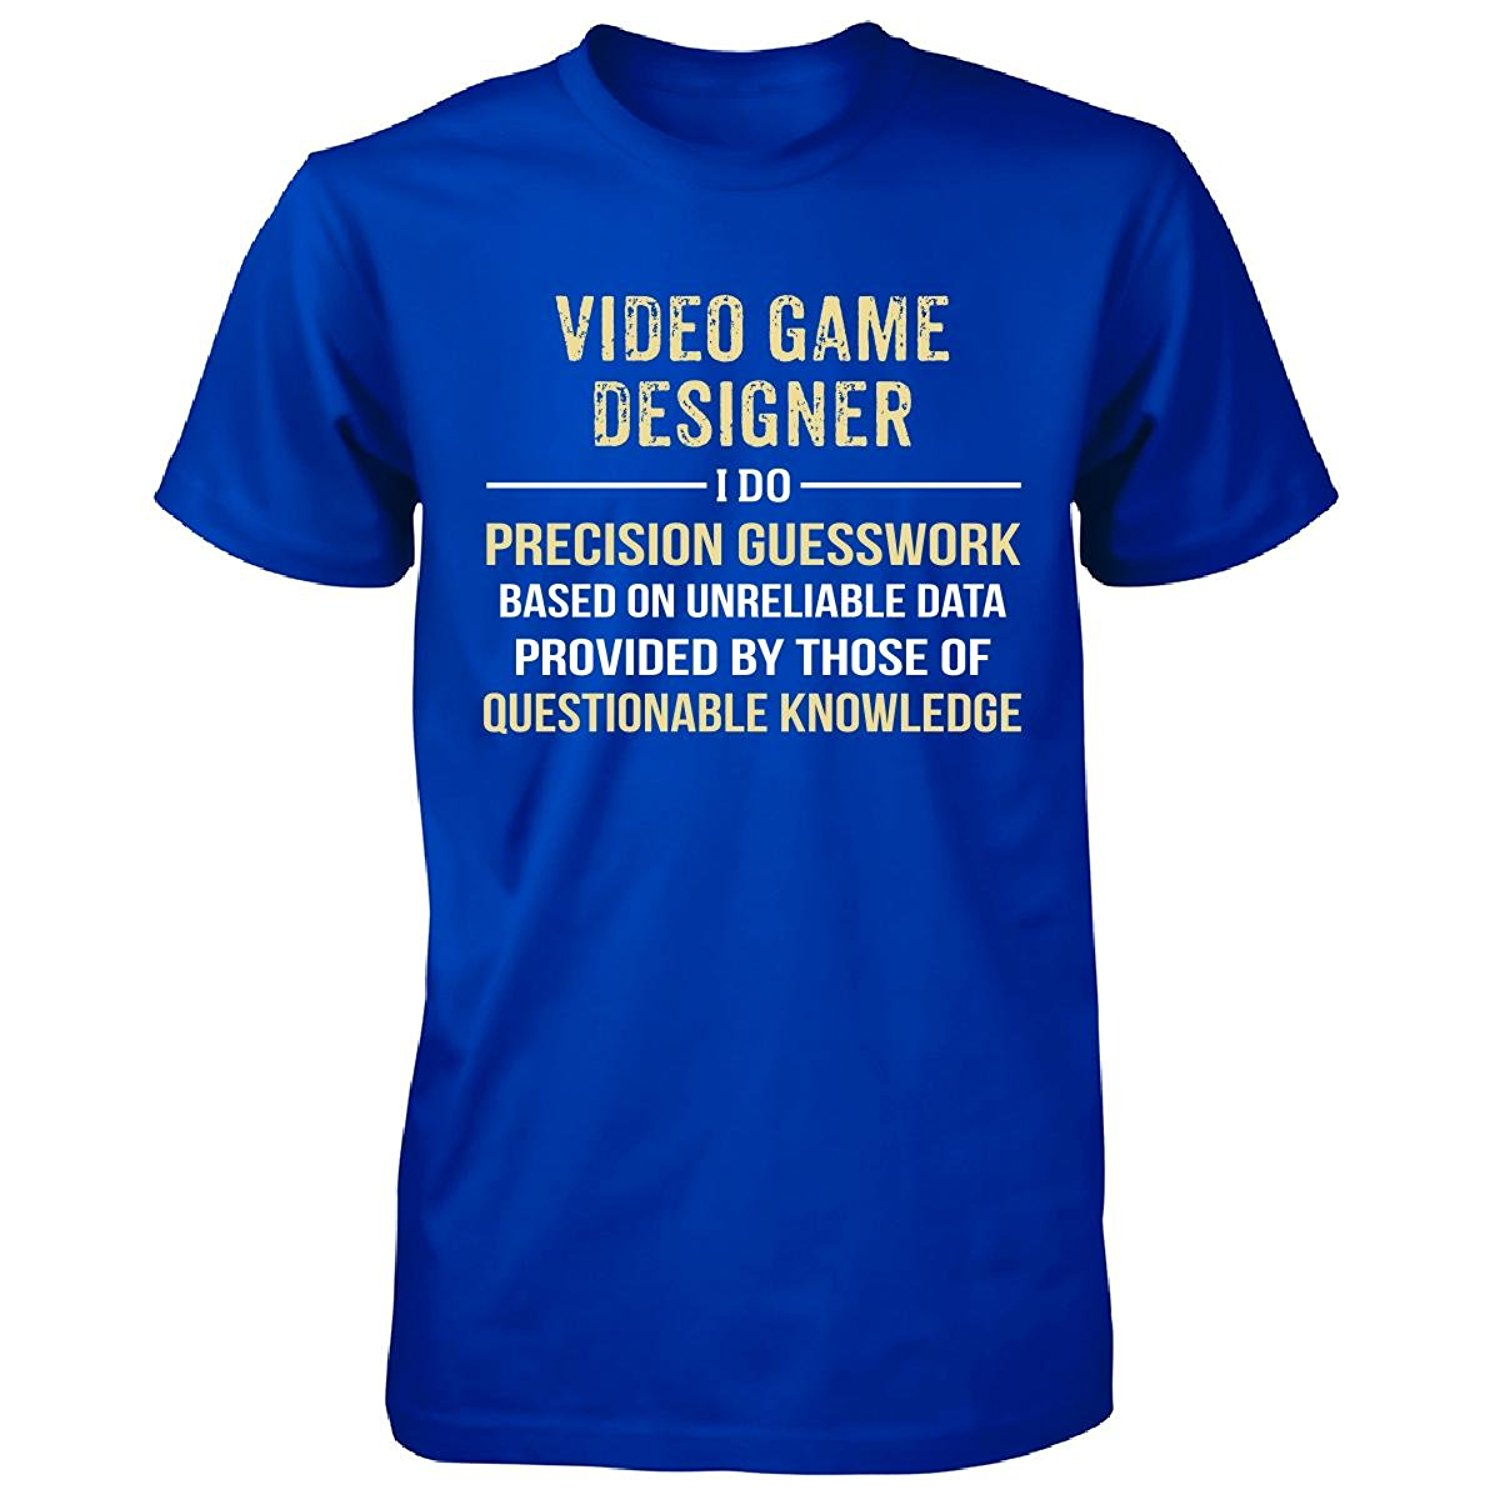 Design t shirt games online - Design T Shirt Games Online Man T Shirt Man T Shirt Video Game Designer Man